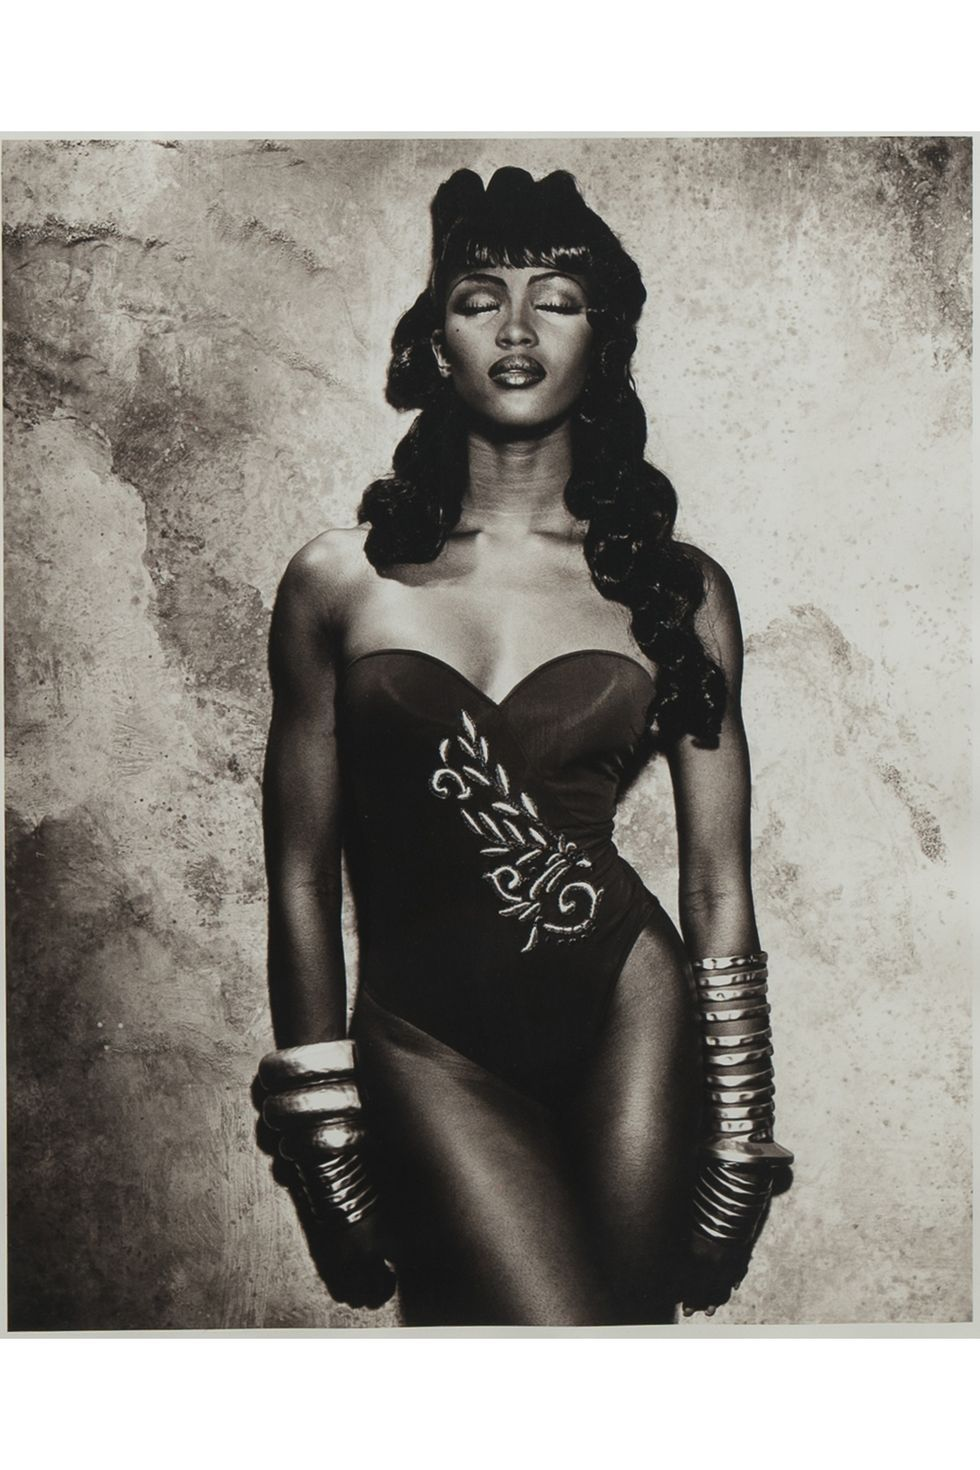 Naomi Campbell, Diane Kruger, and More Featured in Karl Lagerfeld's Photography Collection